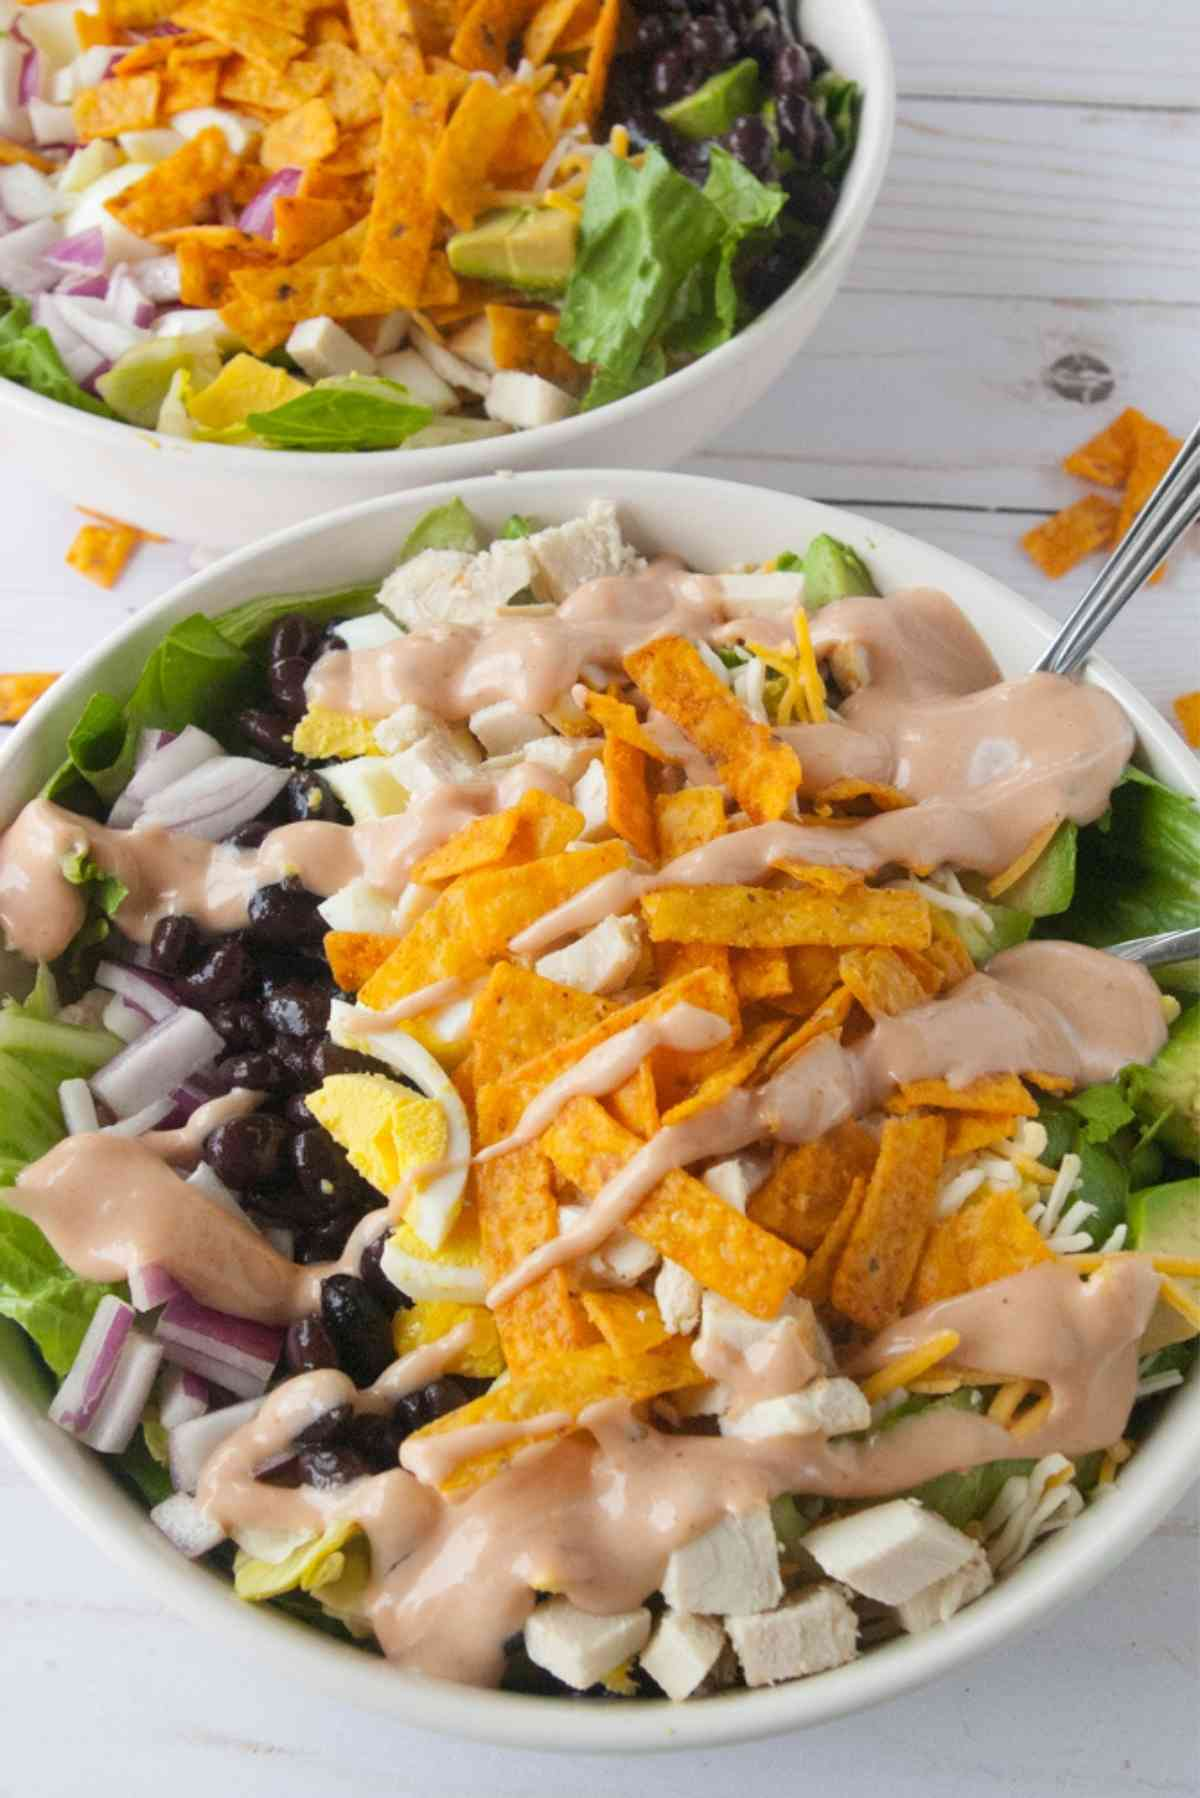 Bowlful of lettuce topped with chicken, black beans, red onions, barbecue ranch dressing and more!